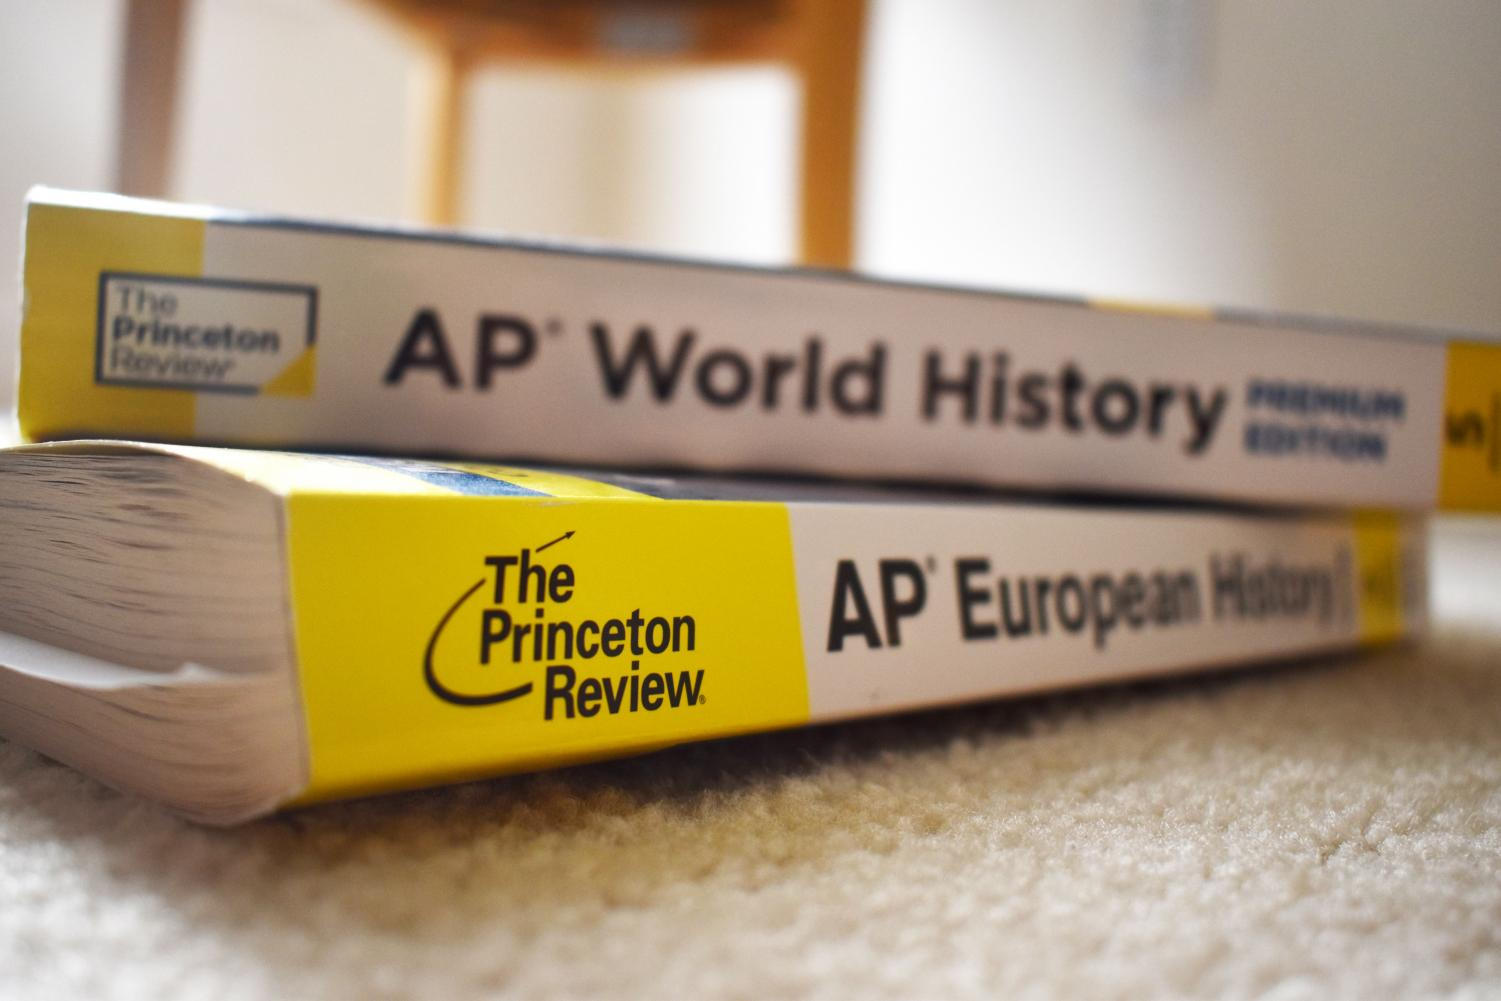 The Princeton Review books are used by students to review for the AP tests.